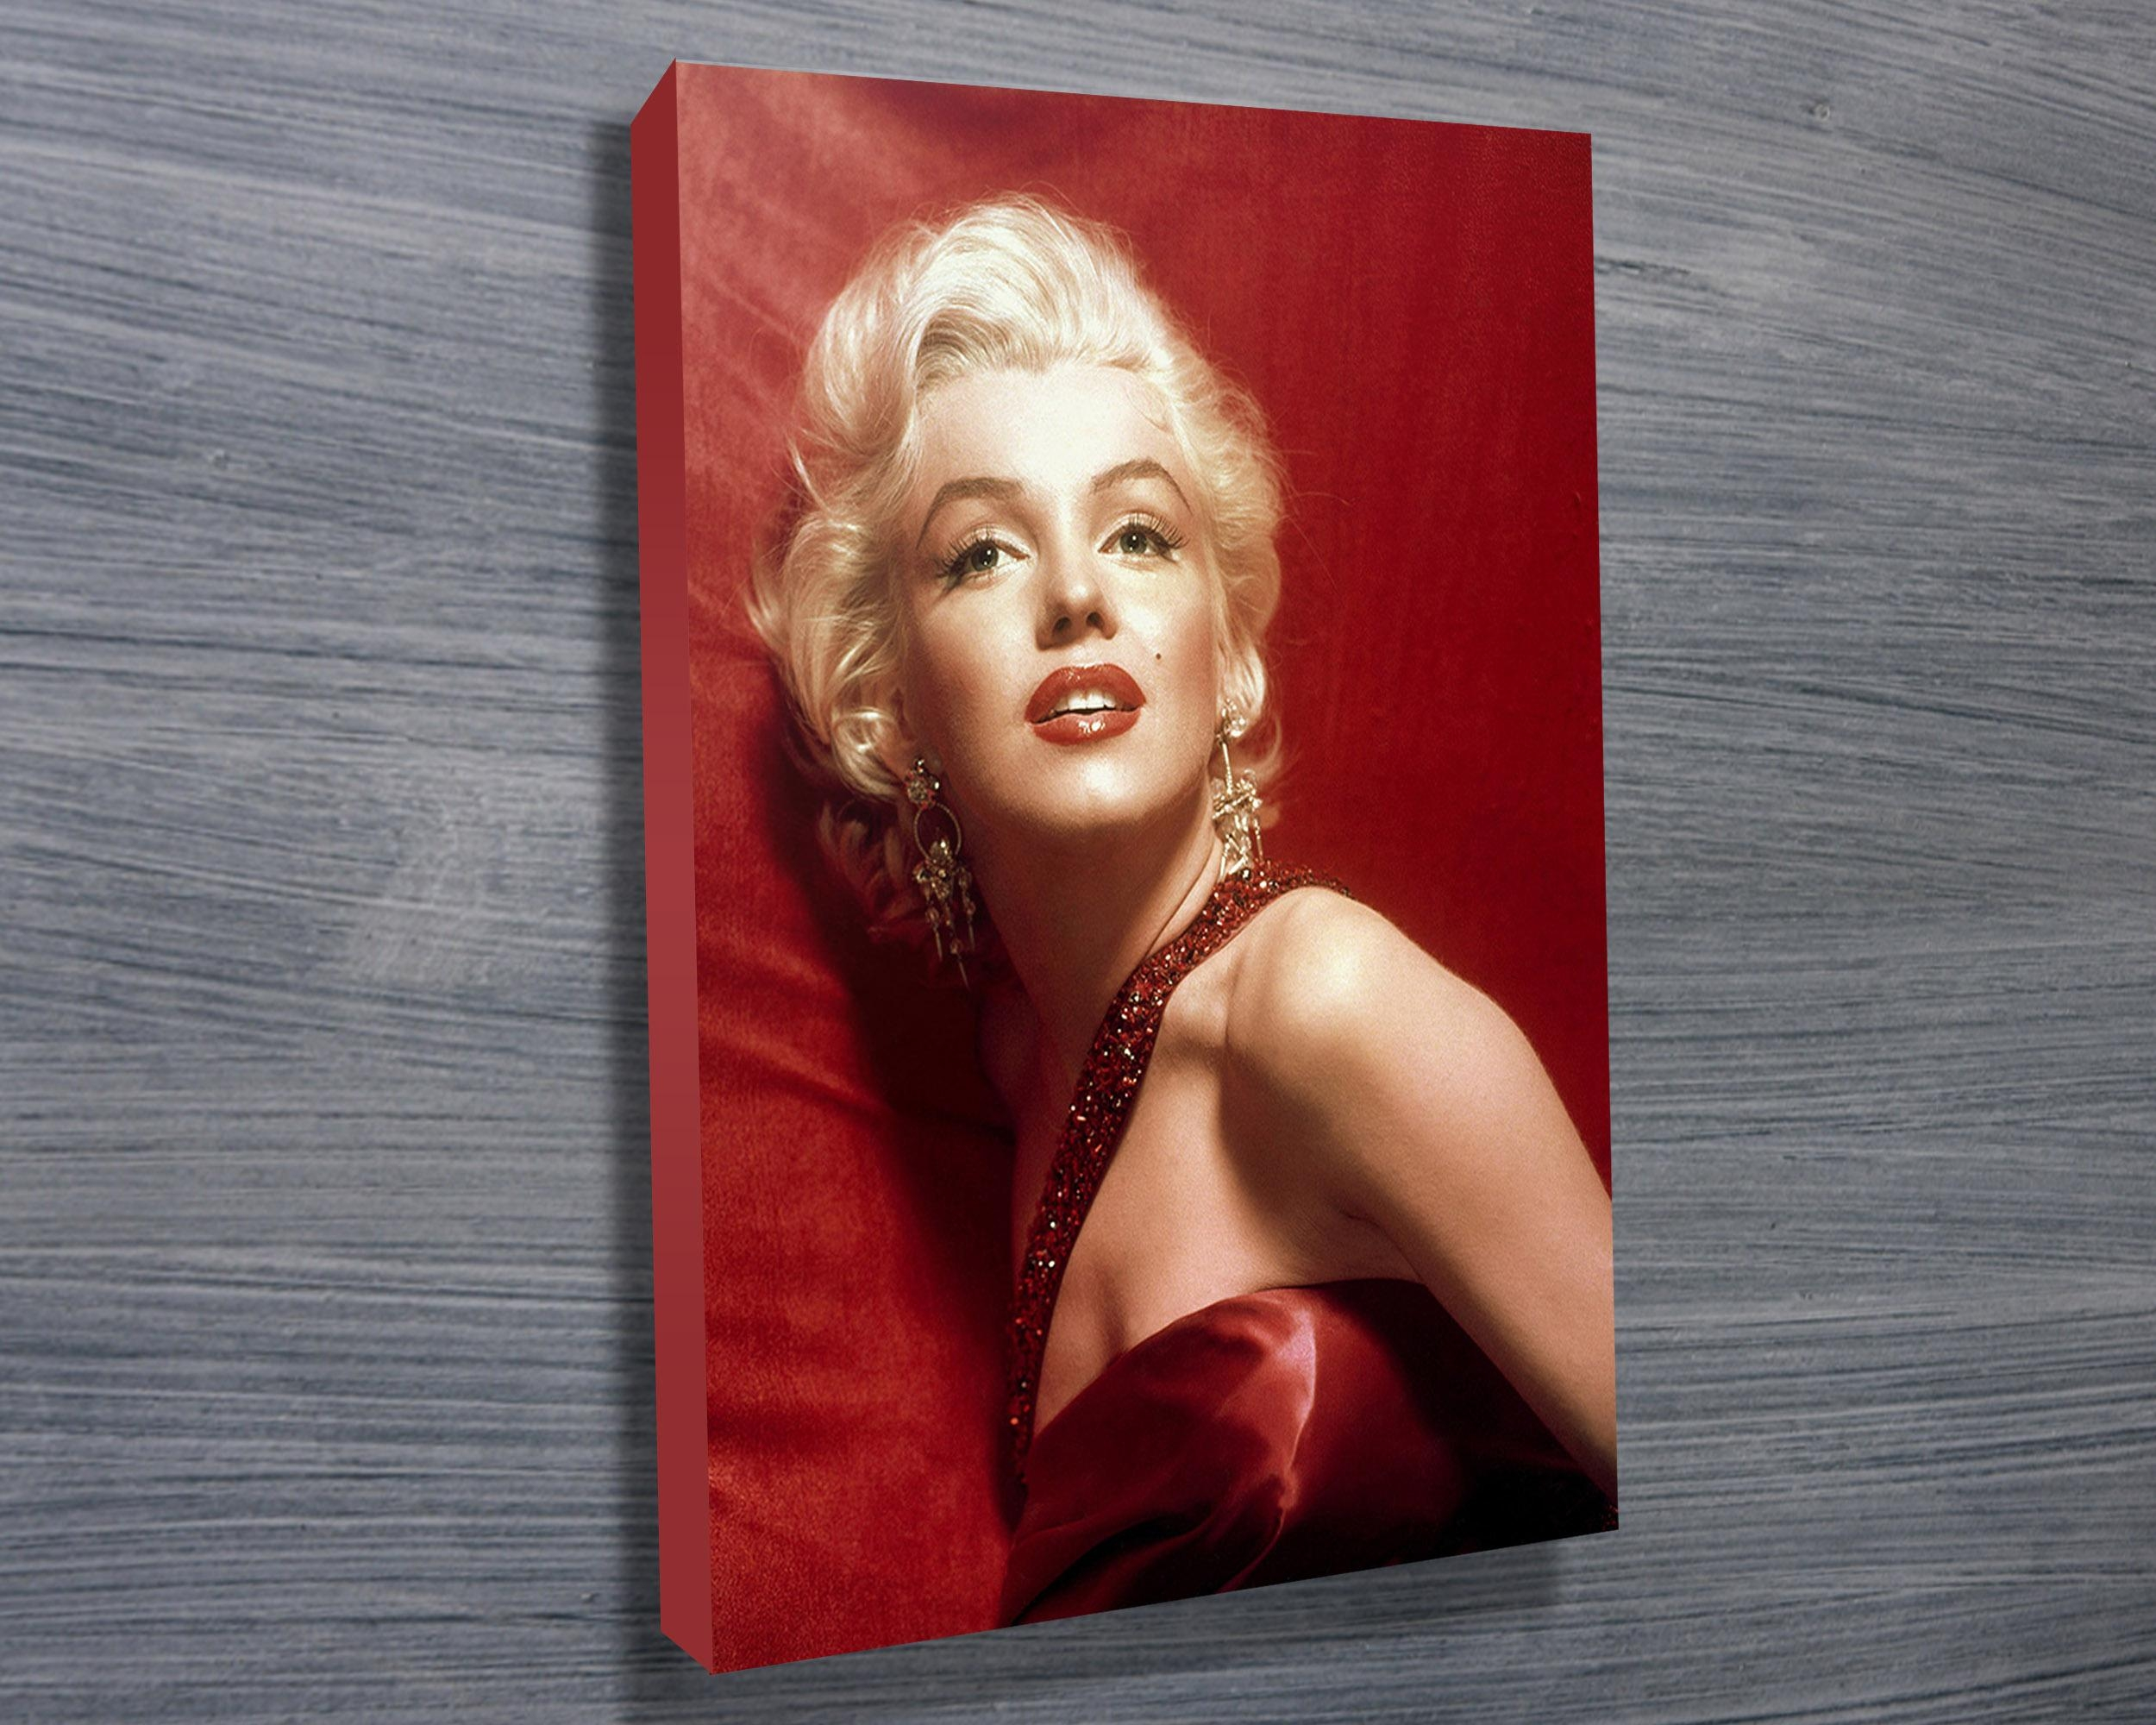 Marilyn Monroe Art – Canvas Prints Australia For Marilyn Monroe Framed Wall Art (View 10 of 20)